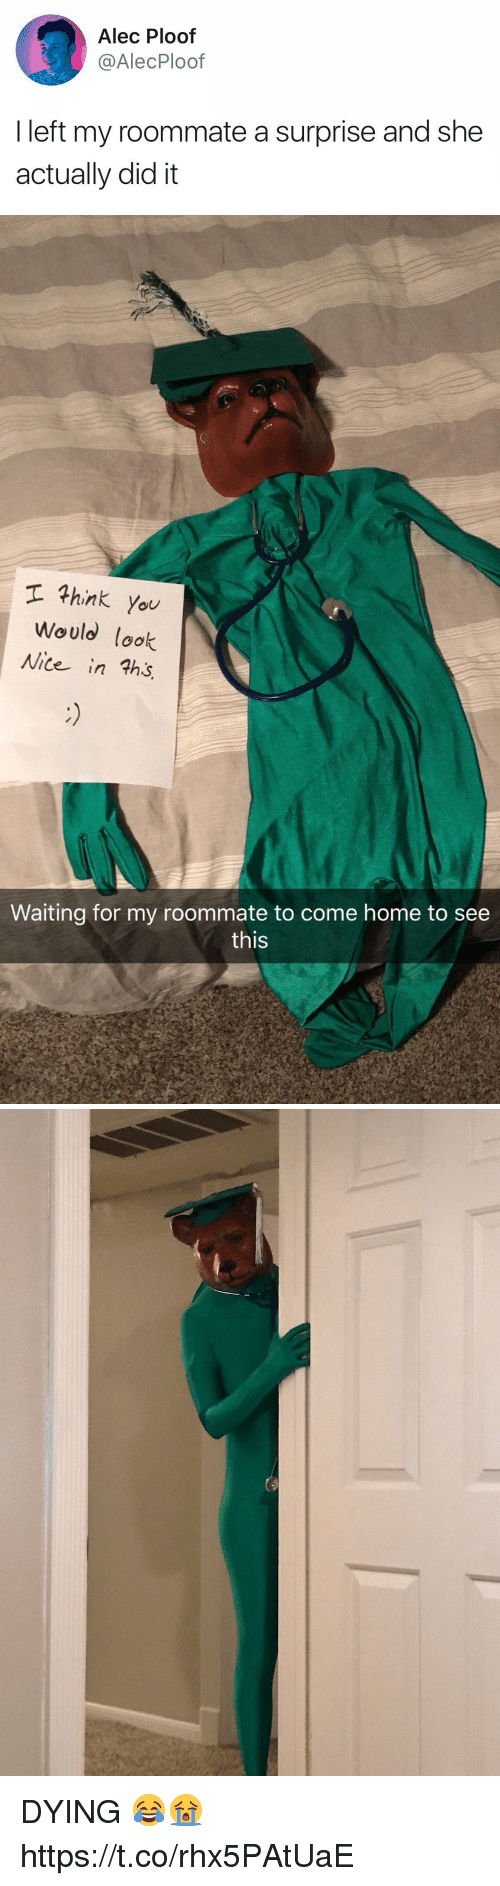 Roommate, Home, and Girl Memes: Alec Ploof  @AlecPloof  I left my roommate a surprise and she  actually did it   hink you  Would lok  Nite in ths  Waiting for my roommate to come home to see  this DYING 😂😭 https://t.co/rhx5PAtUaE